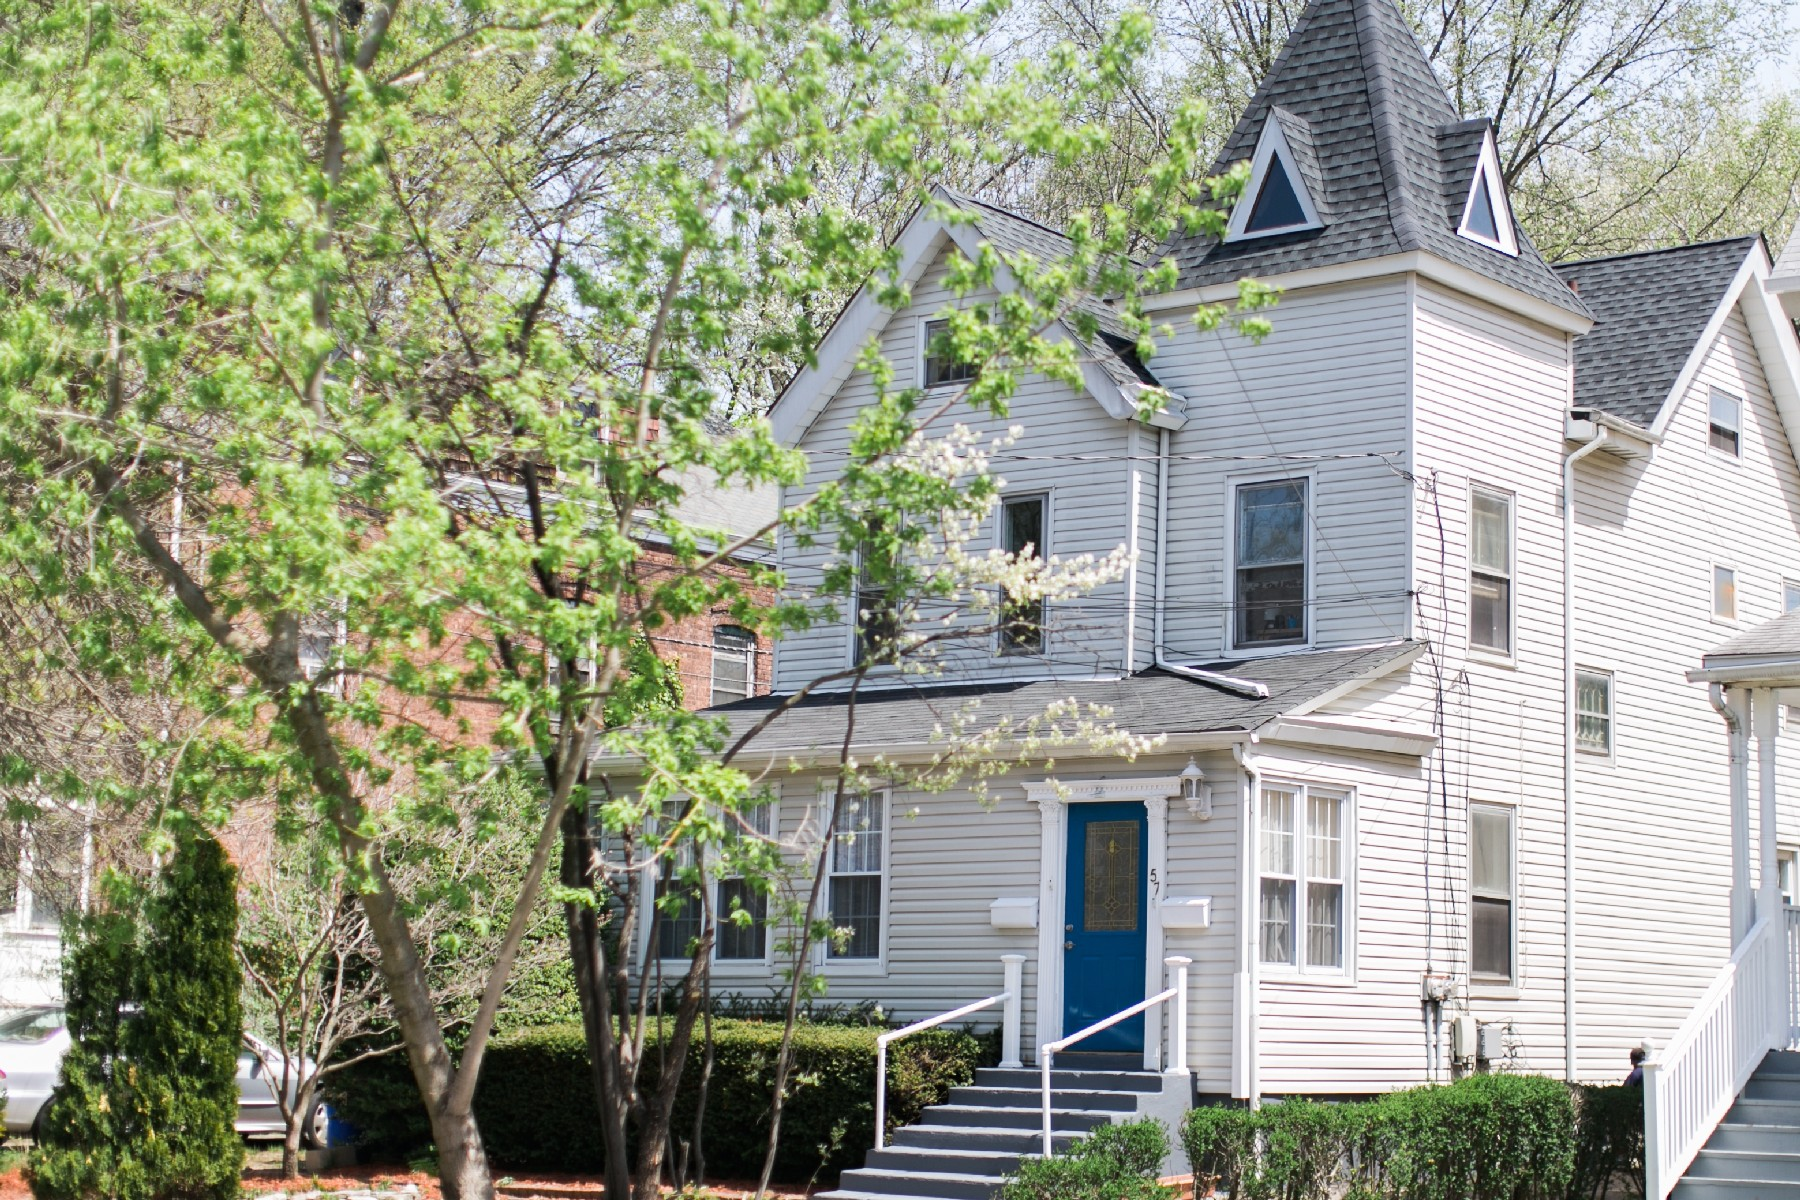 Other Residential for Rent at Two Bedroom Apartment 57 Greenwood Avenue, #1, Montclair, New Jersey 07042 United States